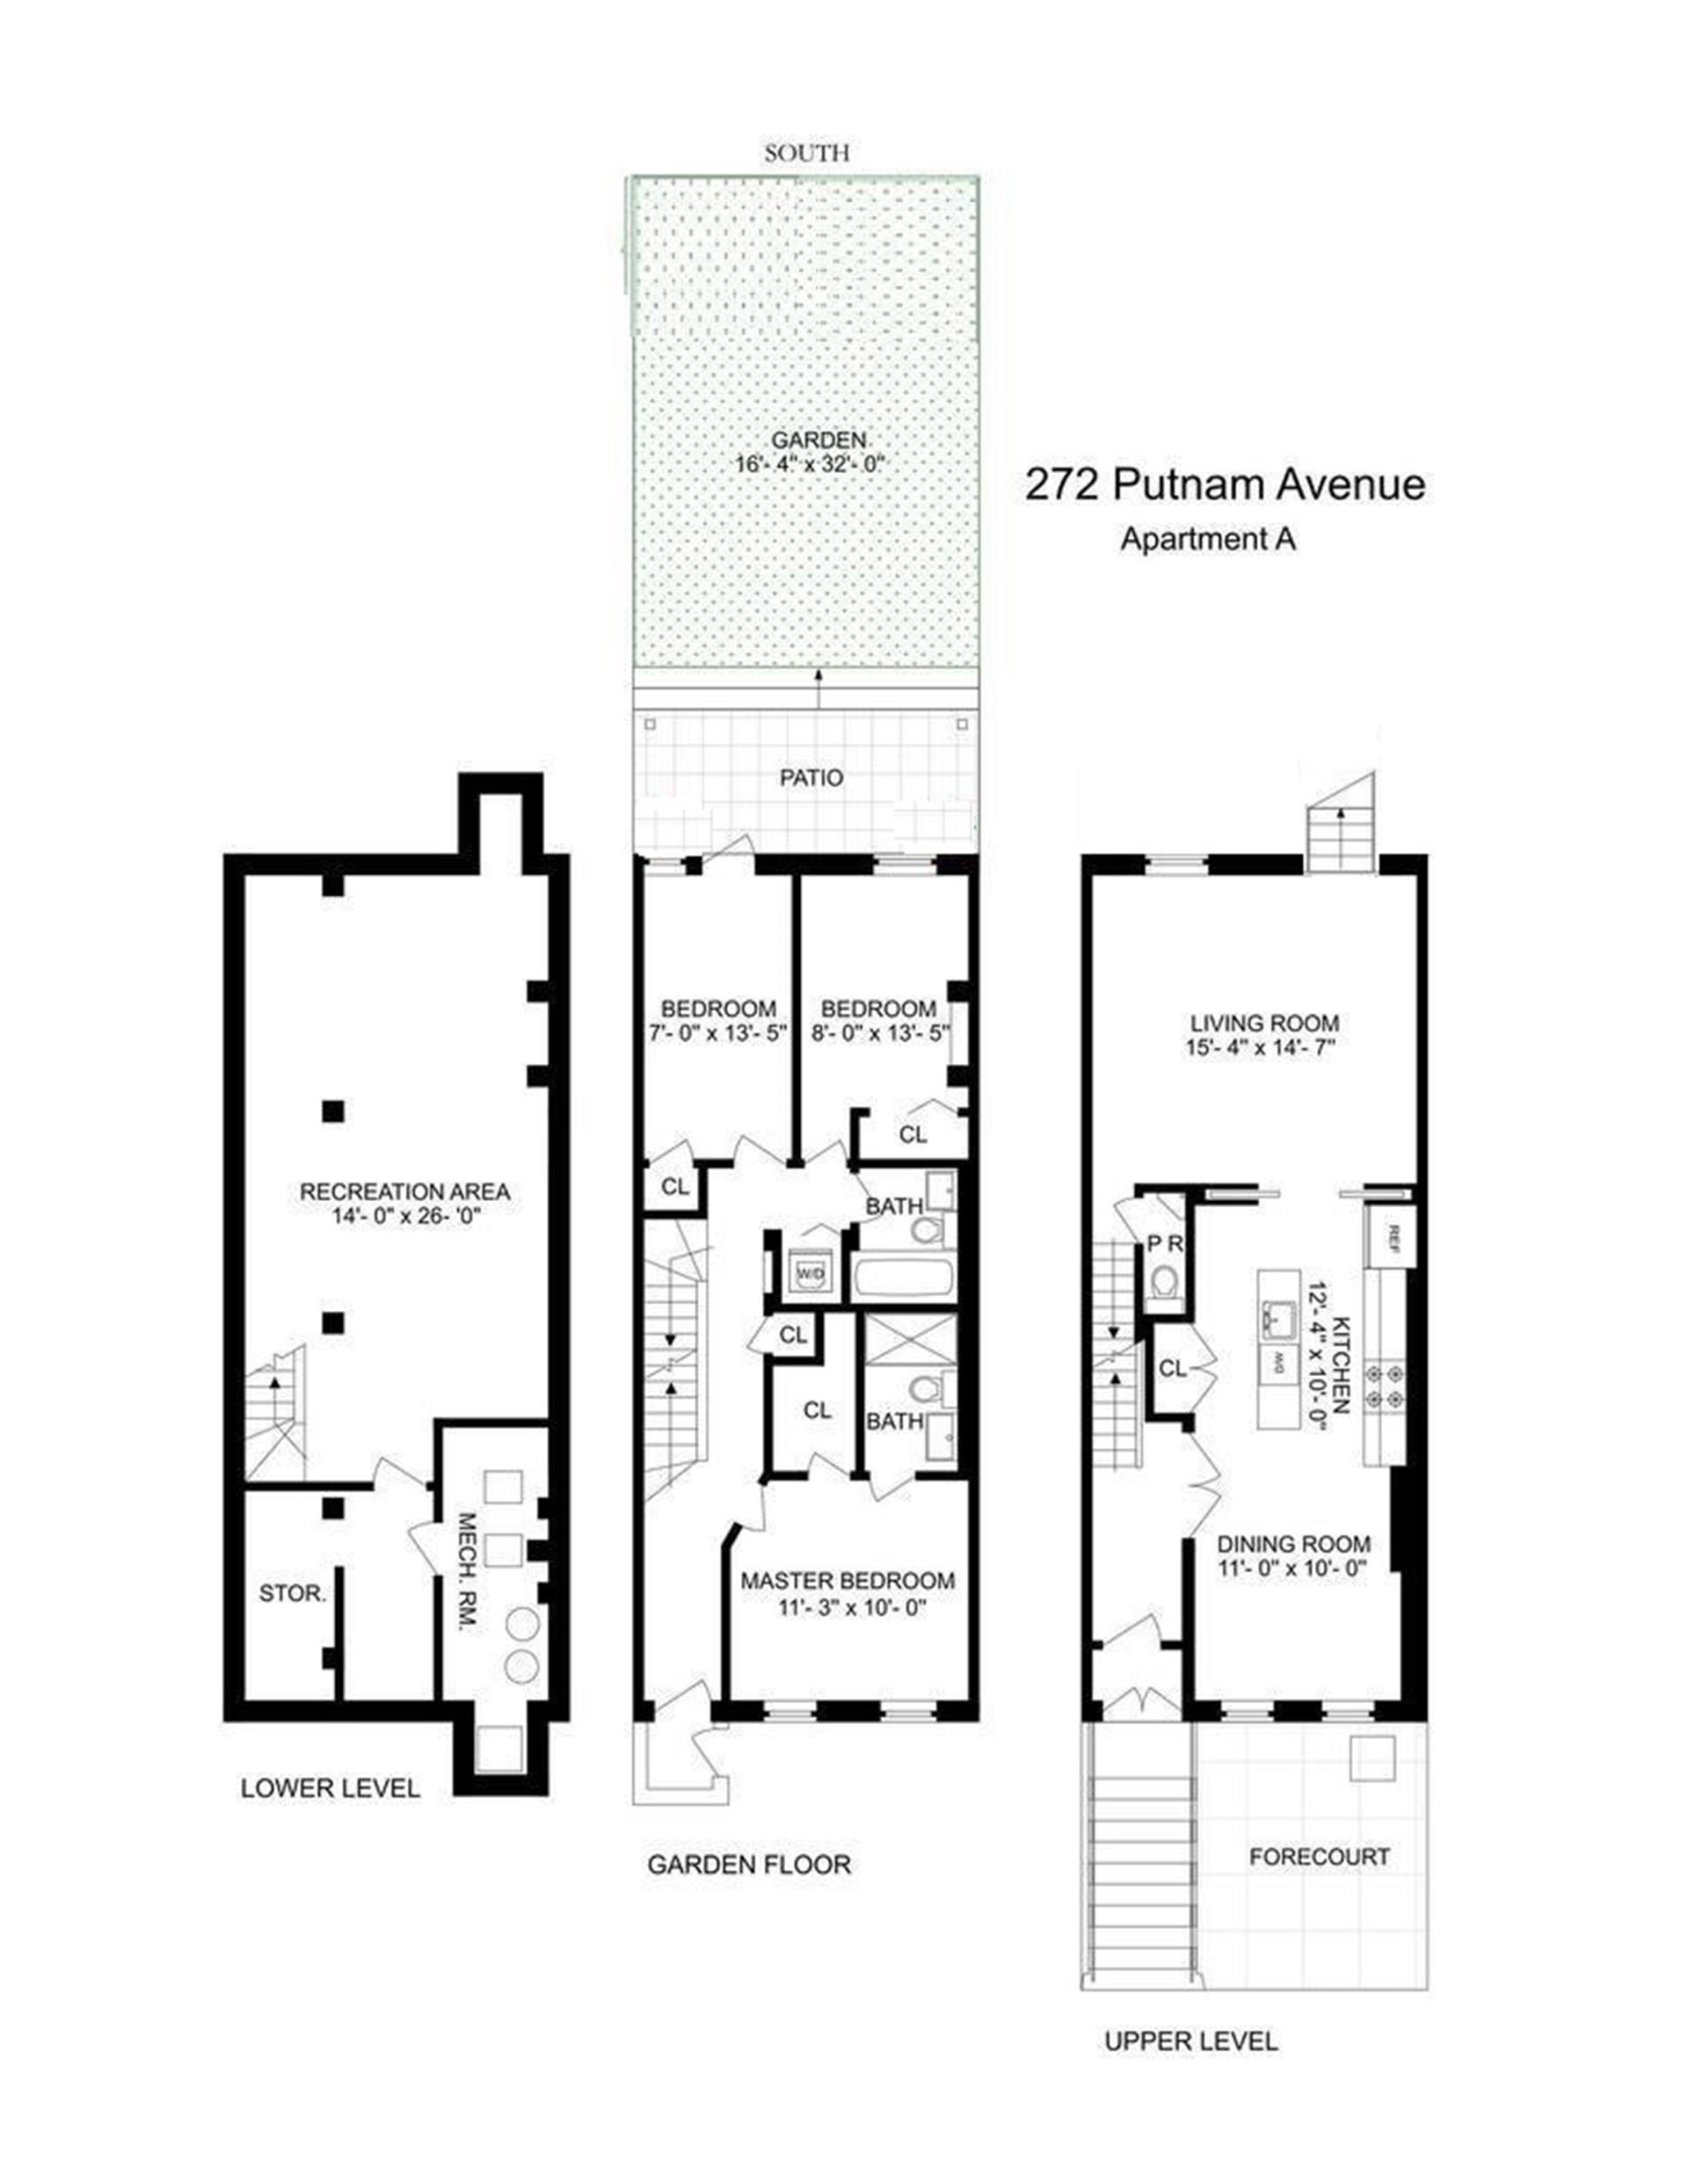 Floor plan of 272 Putnam Avenue, A - Bedford - Stuyvesant, New York